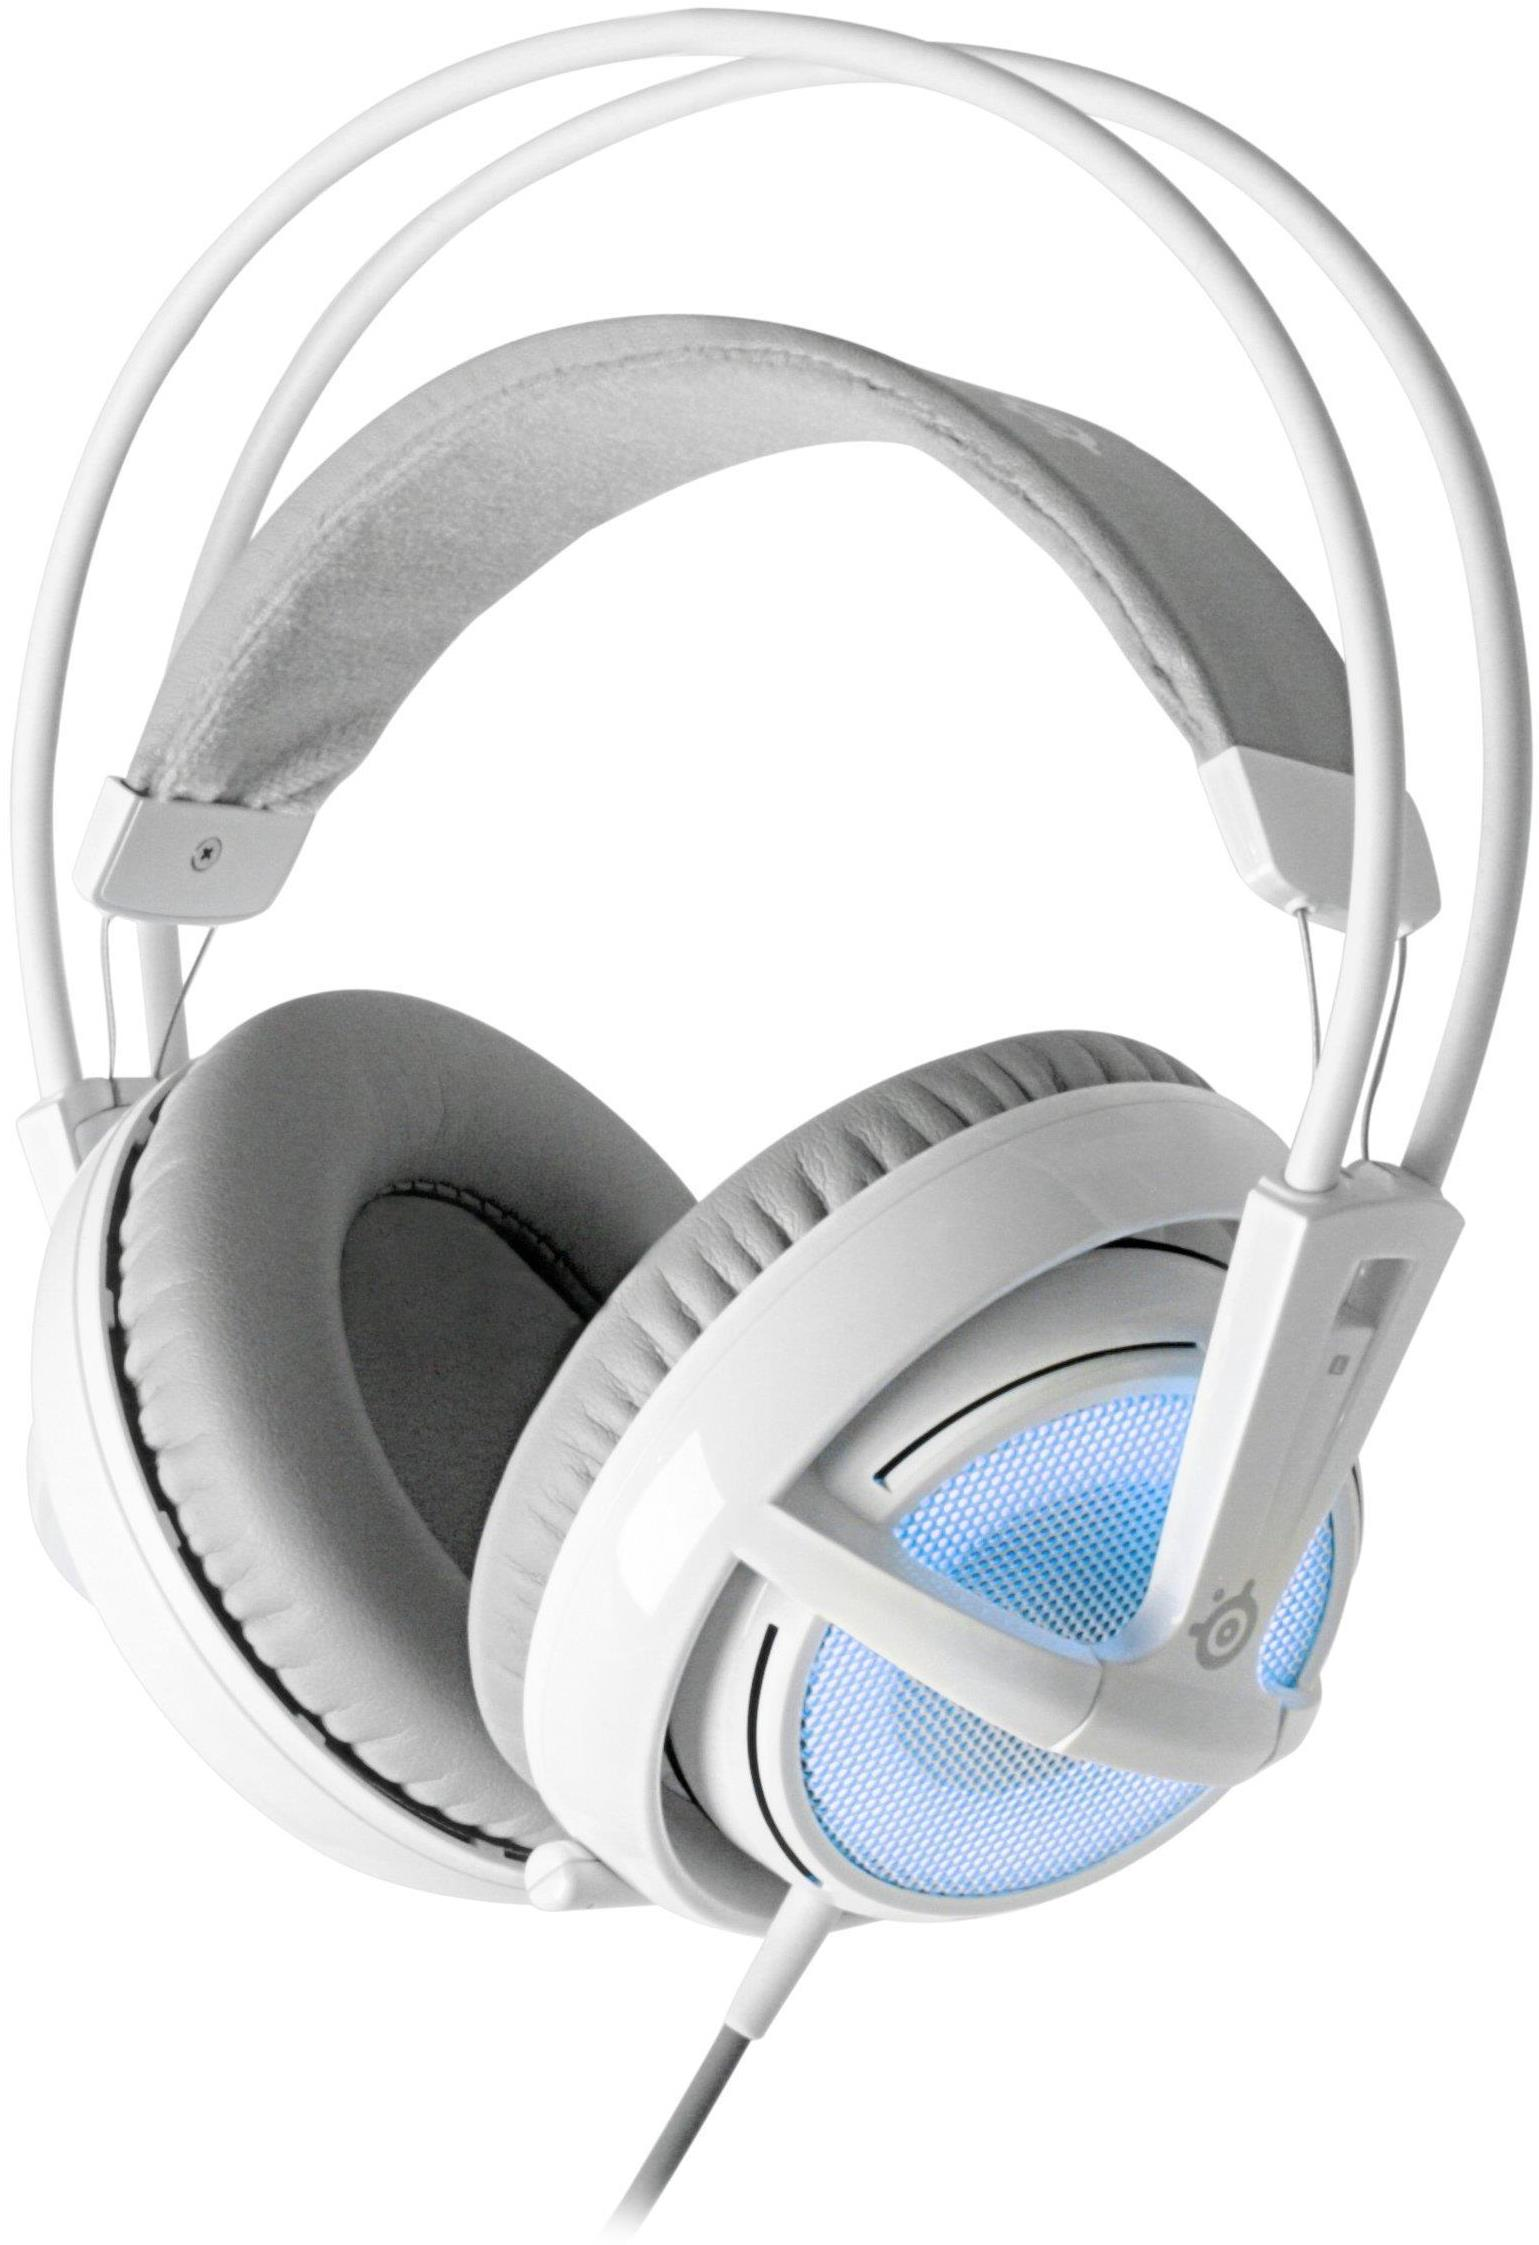 Price Drop £59.99 Siberia V2 Frost Blue Edition USB Headset